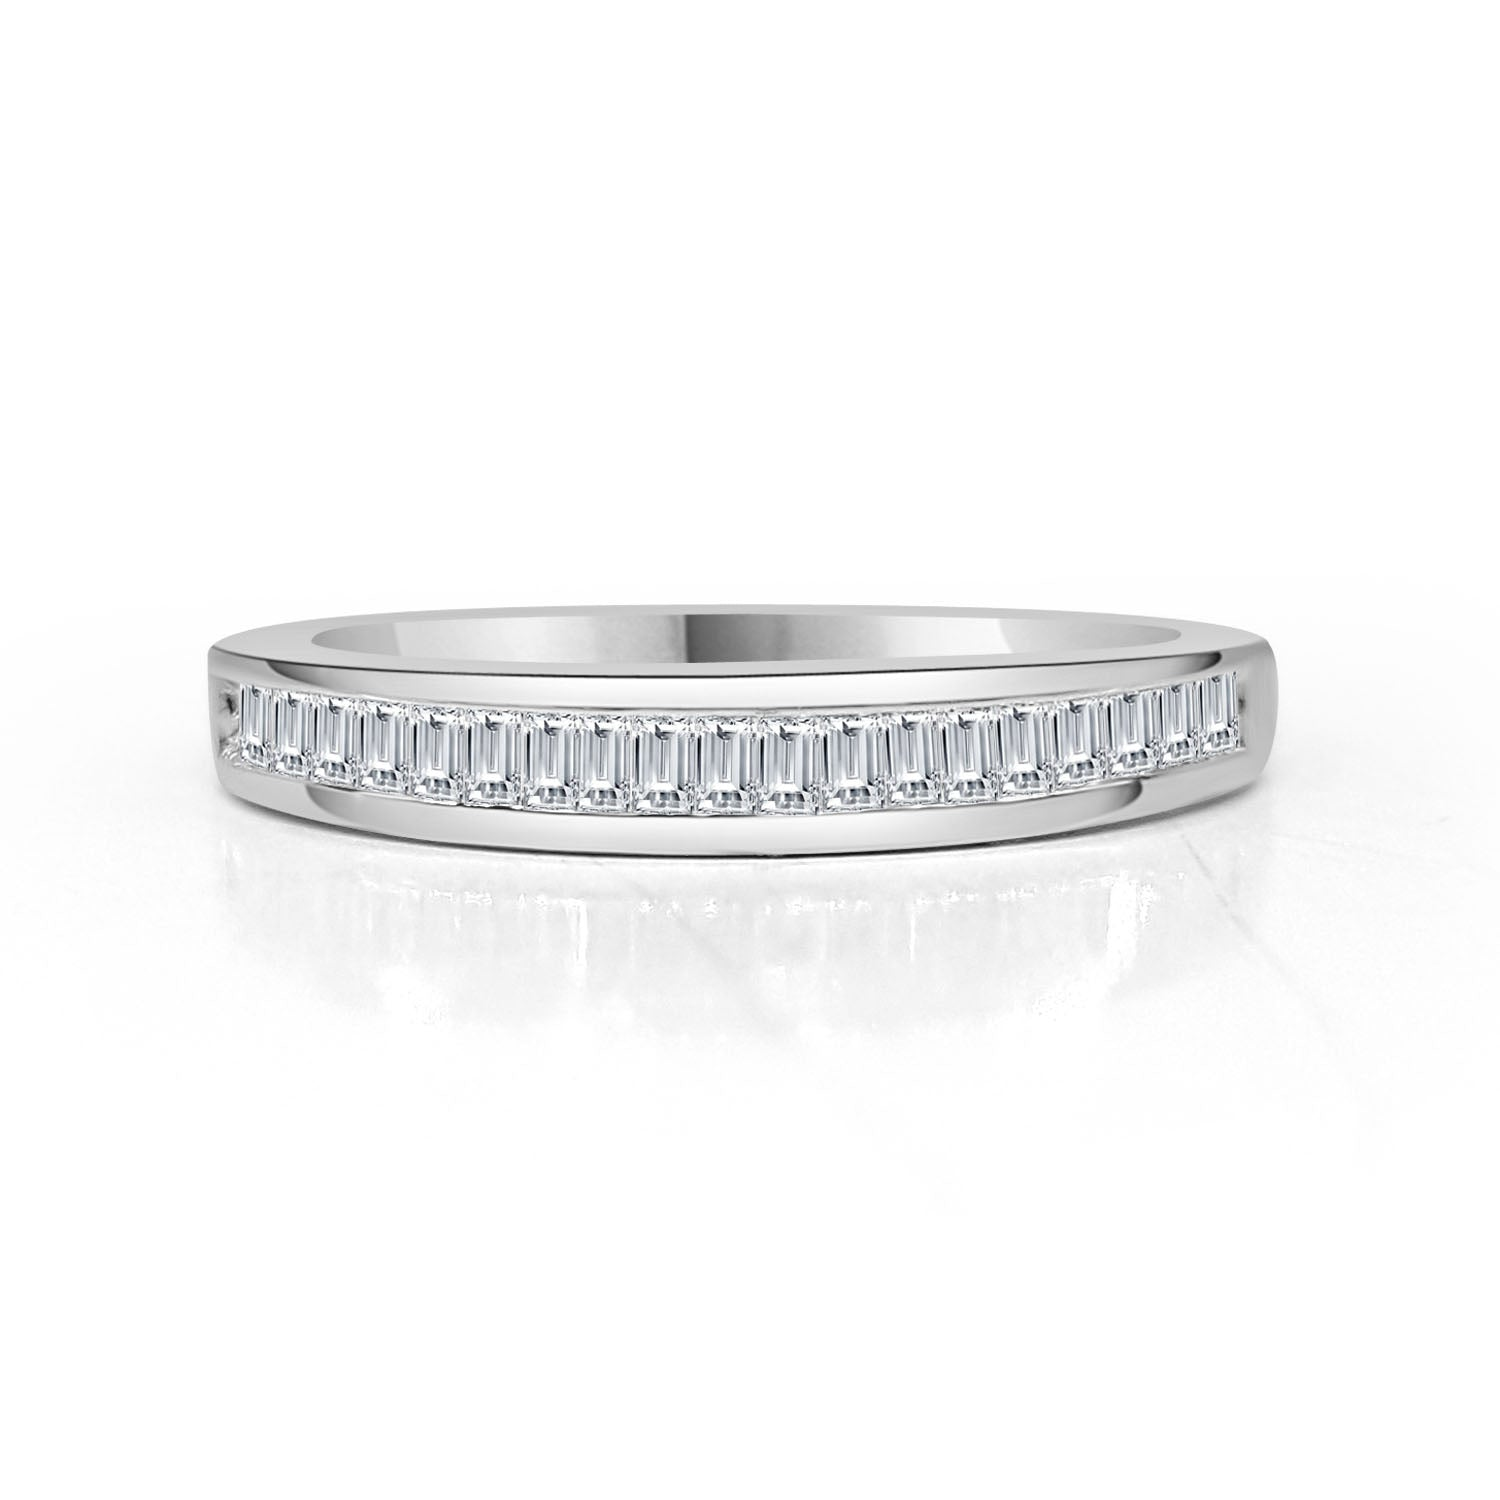 qvc band jennifer sets wedding new baguette bands anniversary ring eternity with epiphany round diamonique